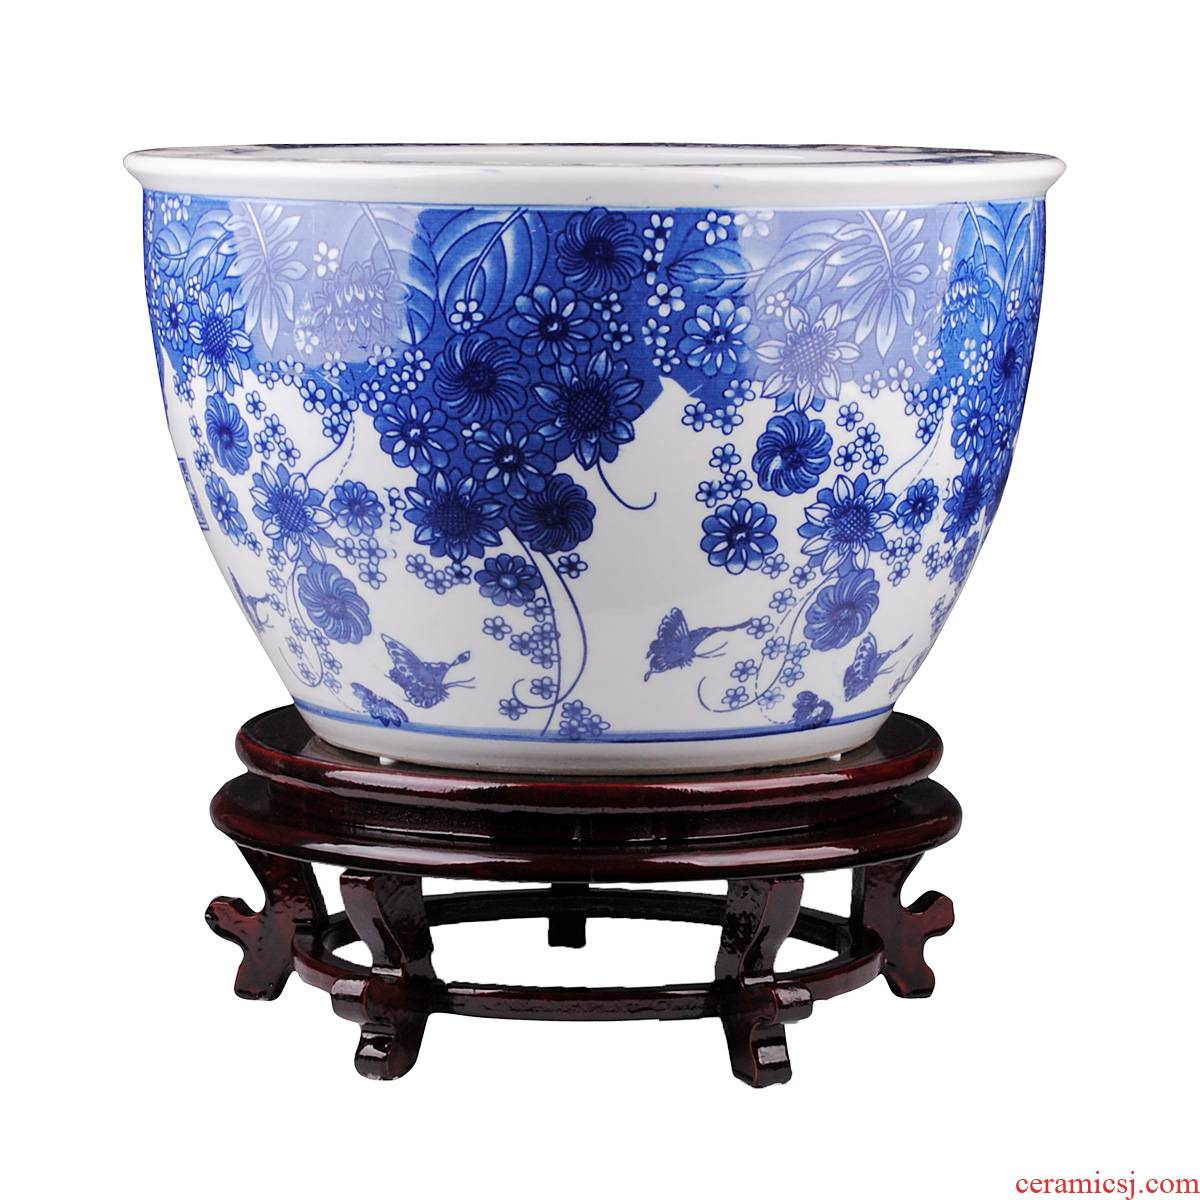 Blue and white porcelain of jingdezhen ceramics goldfish bowl the tortoise cylinder landing a large aquarium home furnishing articles water lily and practical